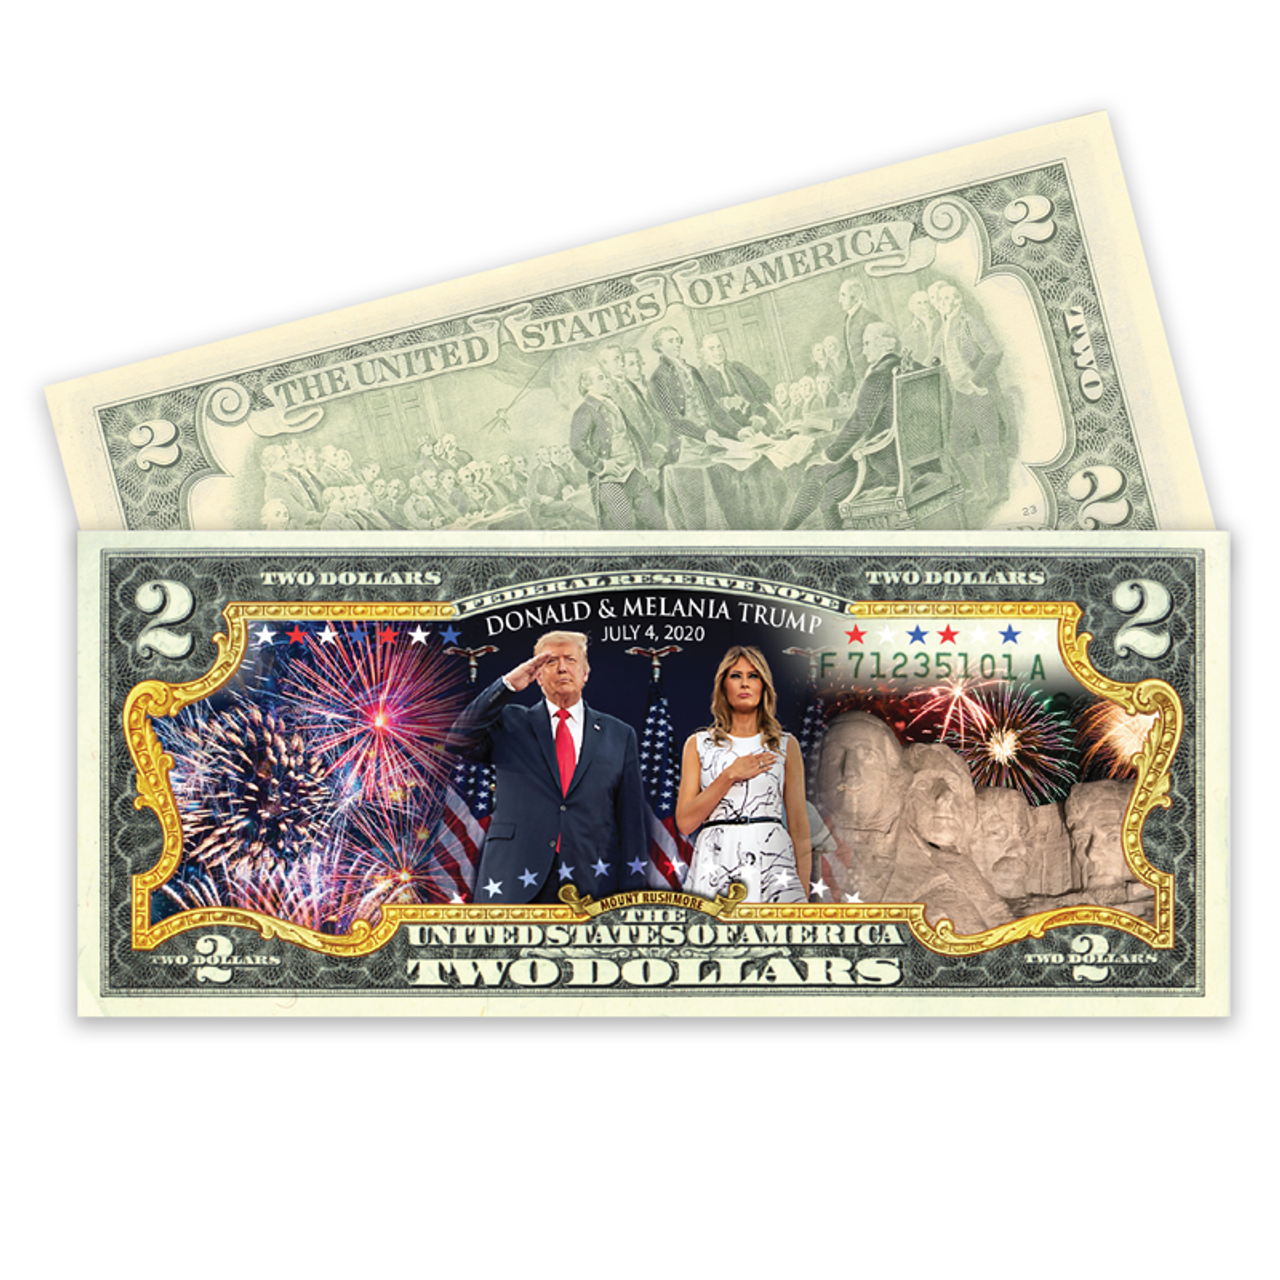 Mount Rushmore Colorized $2 Bill